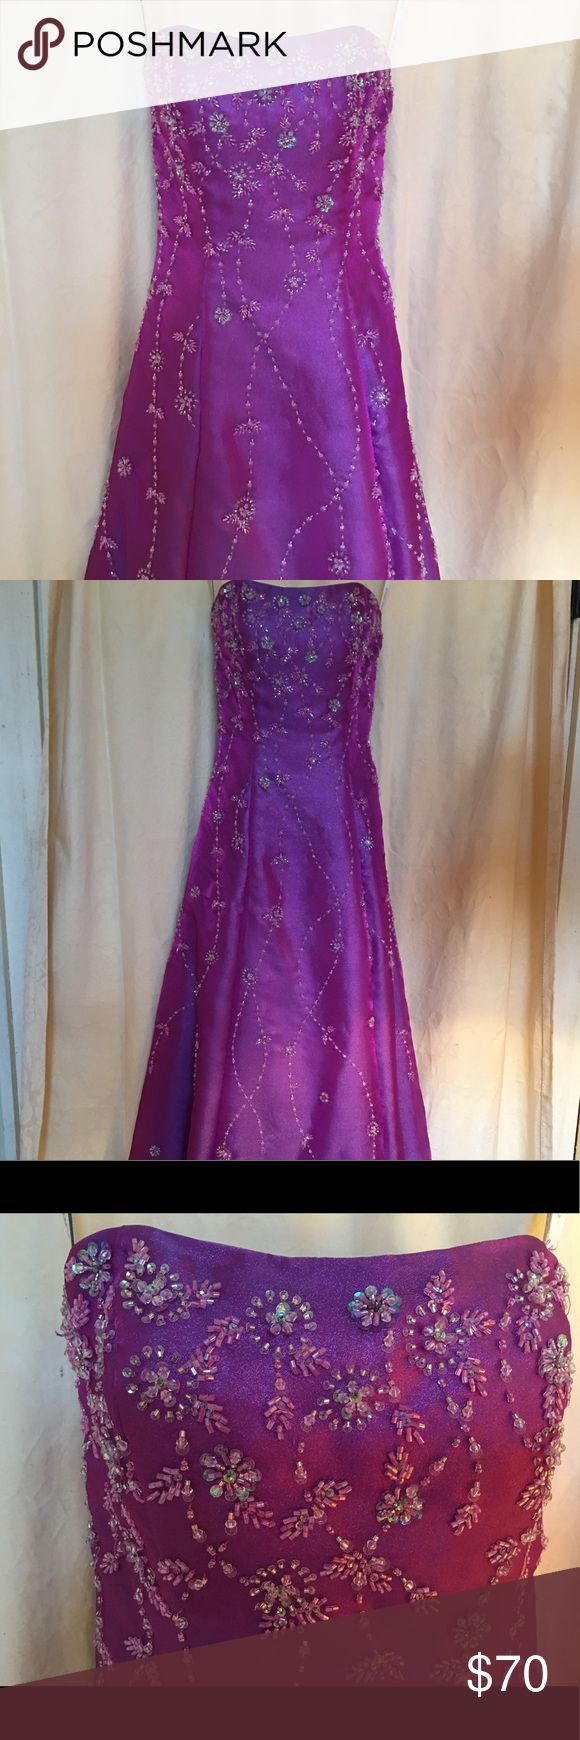 """Alfred Angelo Gorgeous Strapless Gown Sz 0 NWOT Beautiful Alfred Angelo Full Length Gown in """"Grape Jam""""  This Strapless Dress is gorgeous with an iridescent purple sheen that just shimmers. Detailed beading and sequins are also iridescent which sparkles.  I purchased this gown for my daughter's formal, but she never wore it. It is from designer Alfred Angelo and is Size 0.  There are a few loose strings on back of Gown - see photo - but all beading is in tact. Excellent condition, full slip…"""